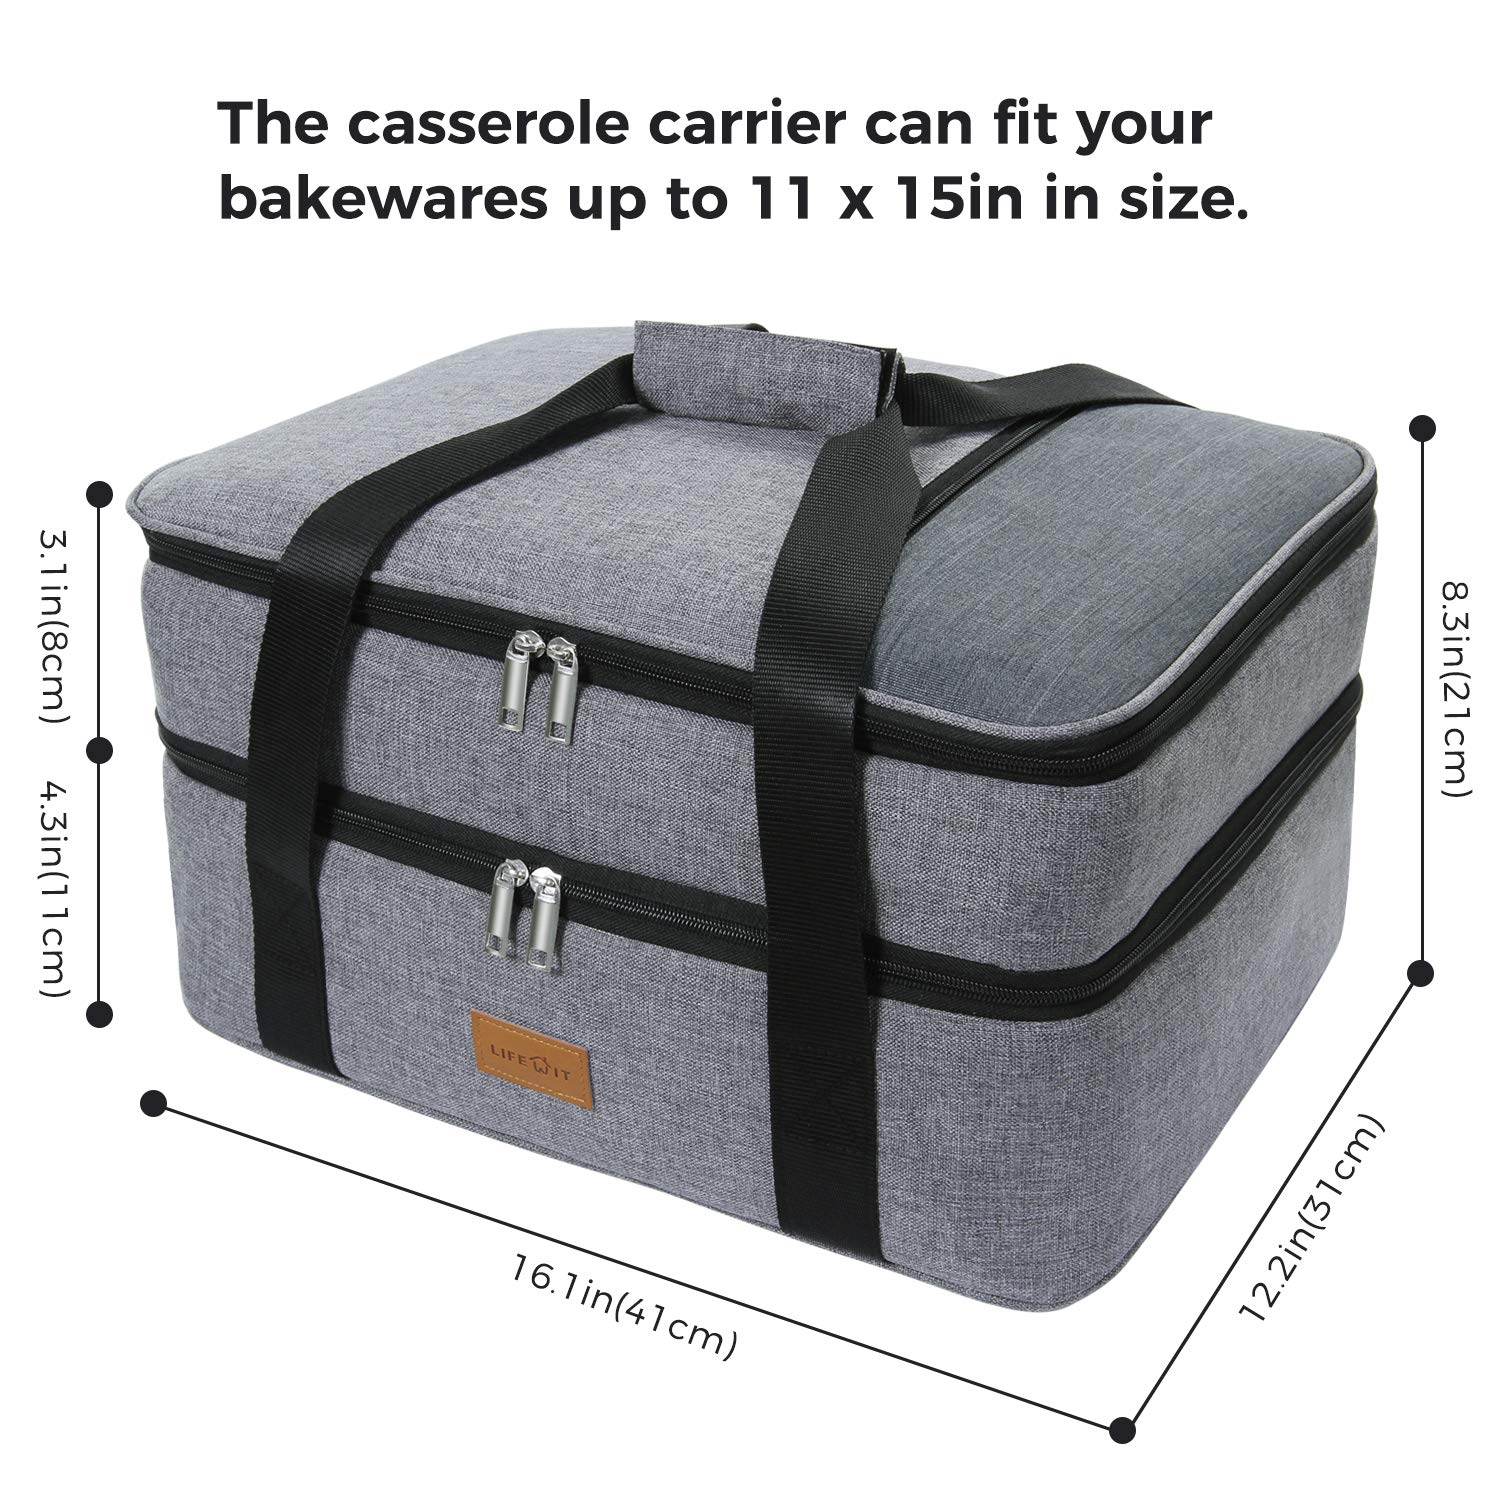 ddd9586925a924 Amazon.com: Lifewit Double Casserole Carrier Lasagna Lugger for Potluck  Parties/Picnic/Beach, Thermal Lunch Bag Tote to Keep Food Hot/Cold, Grey:  Kitchen & ...